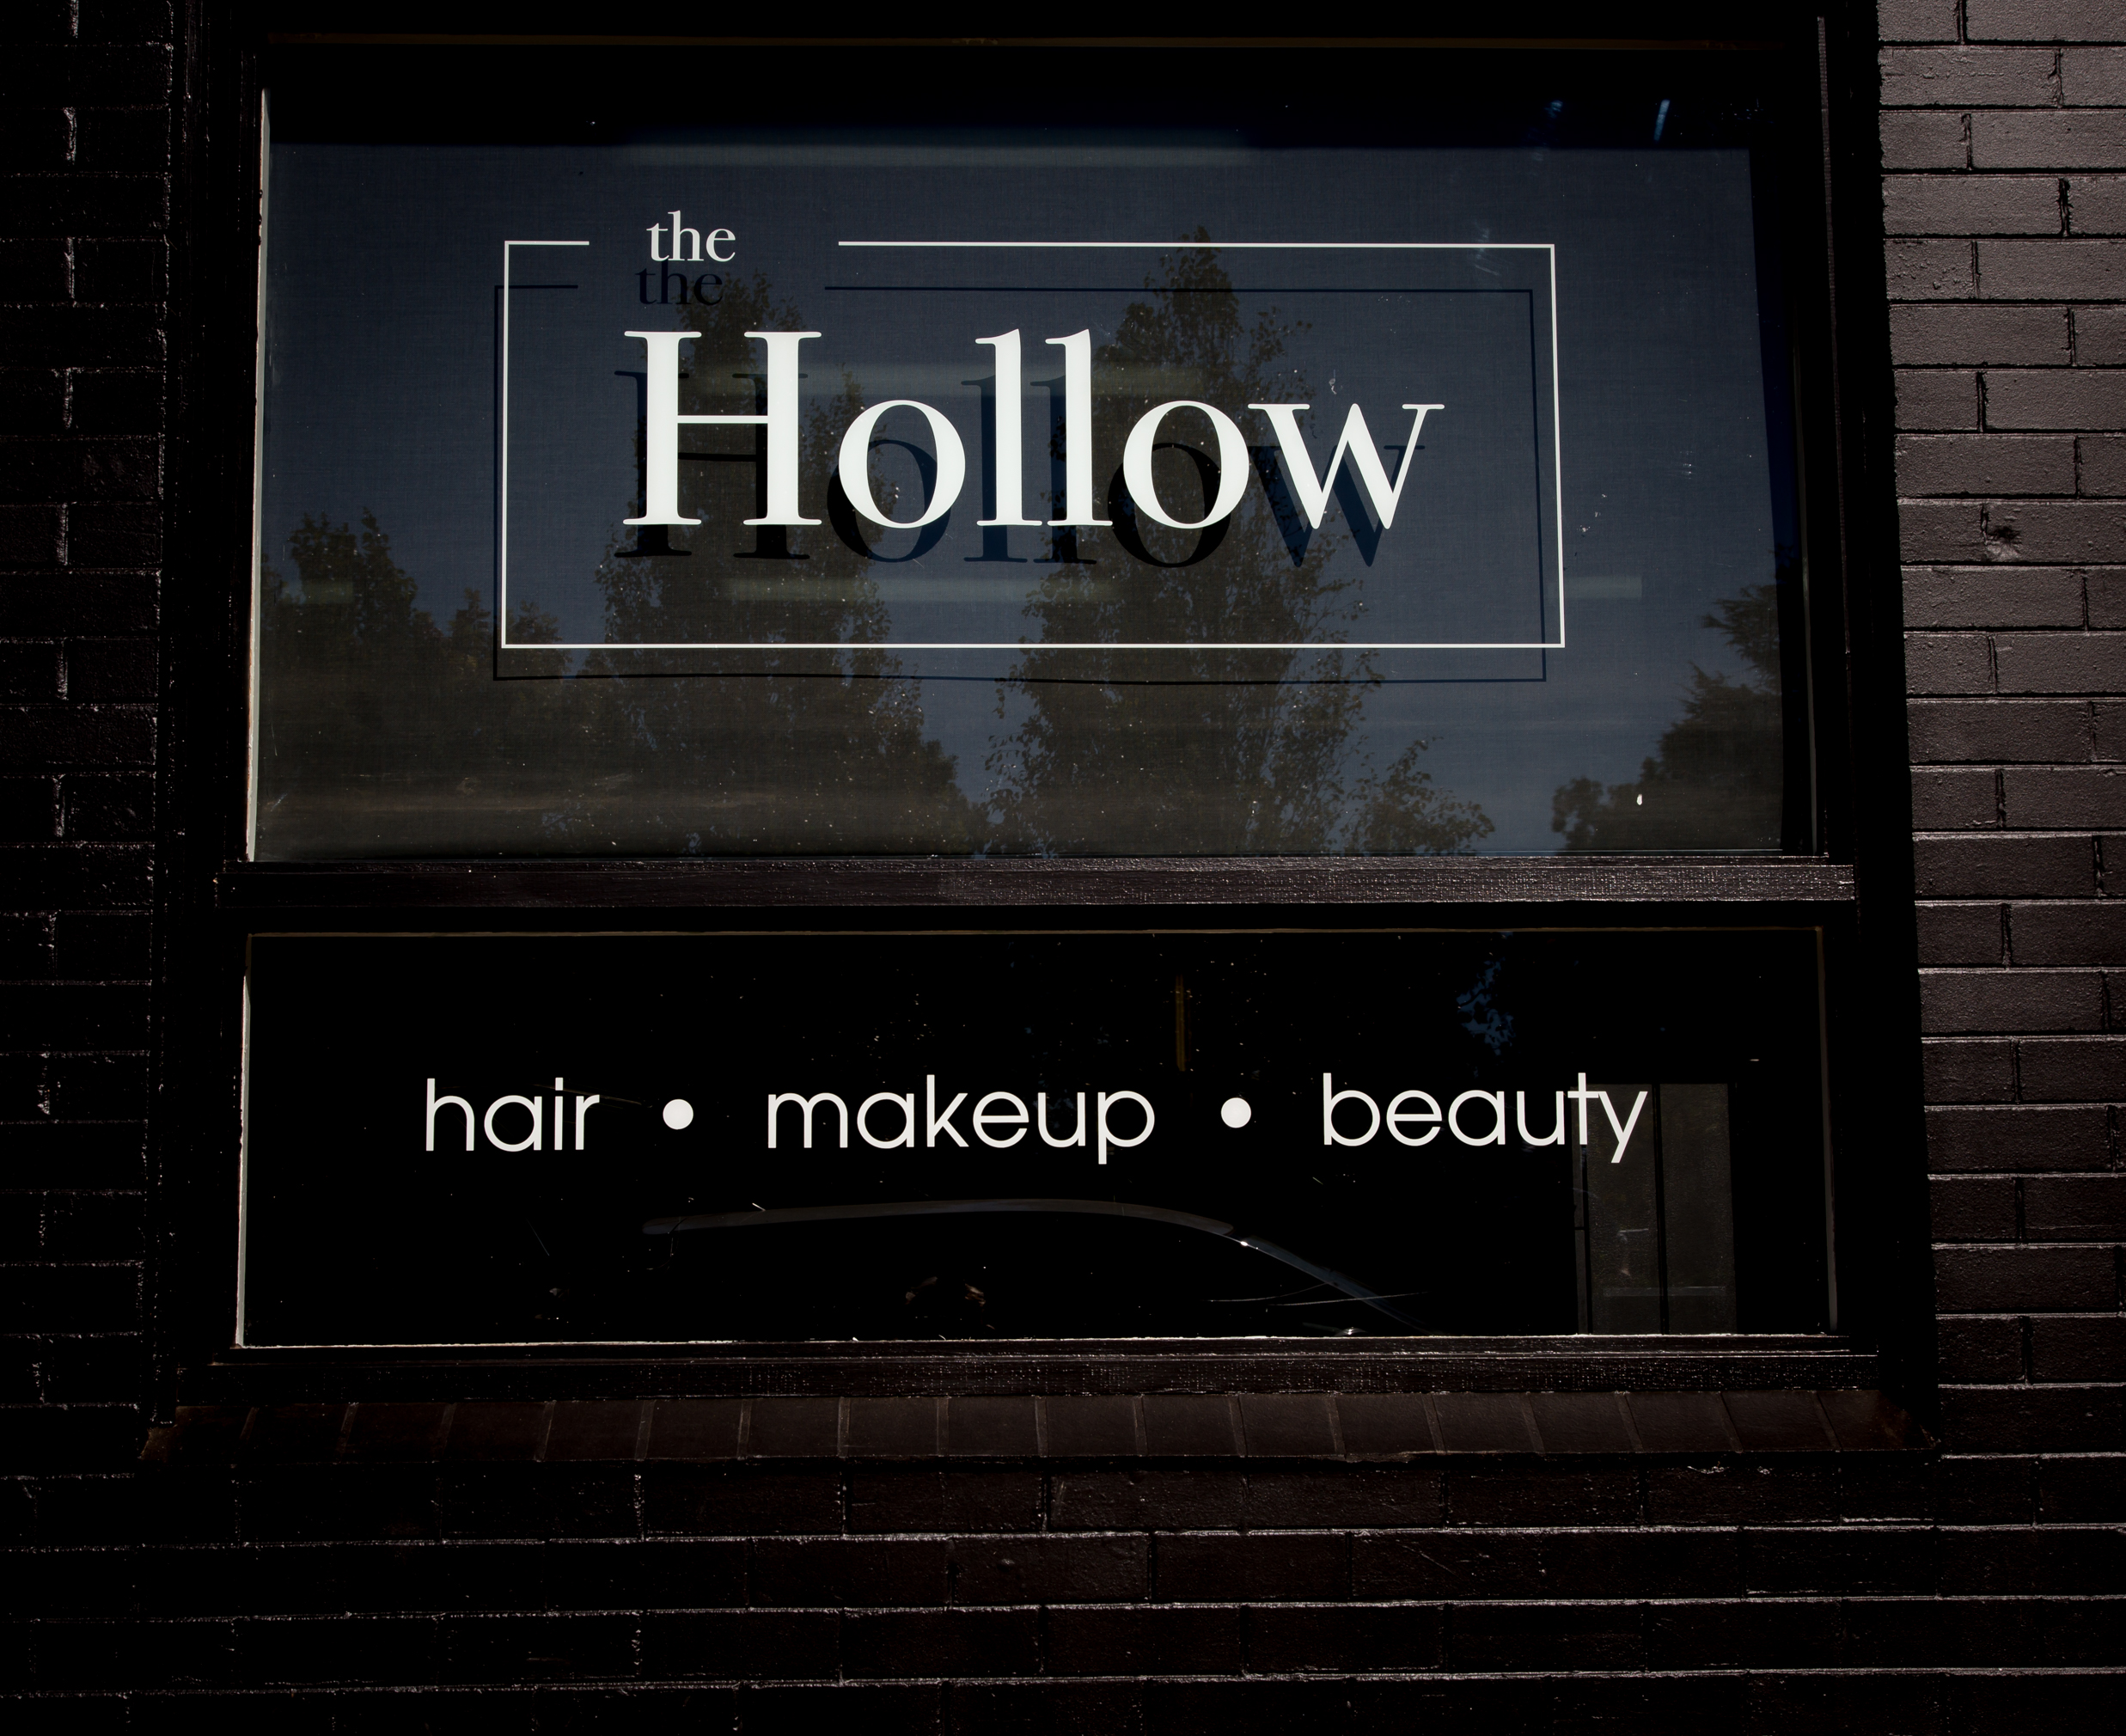 TheHollow-no logo026.jpg